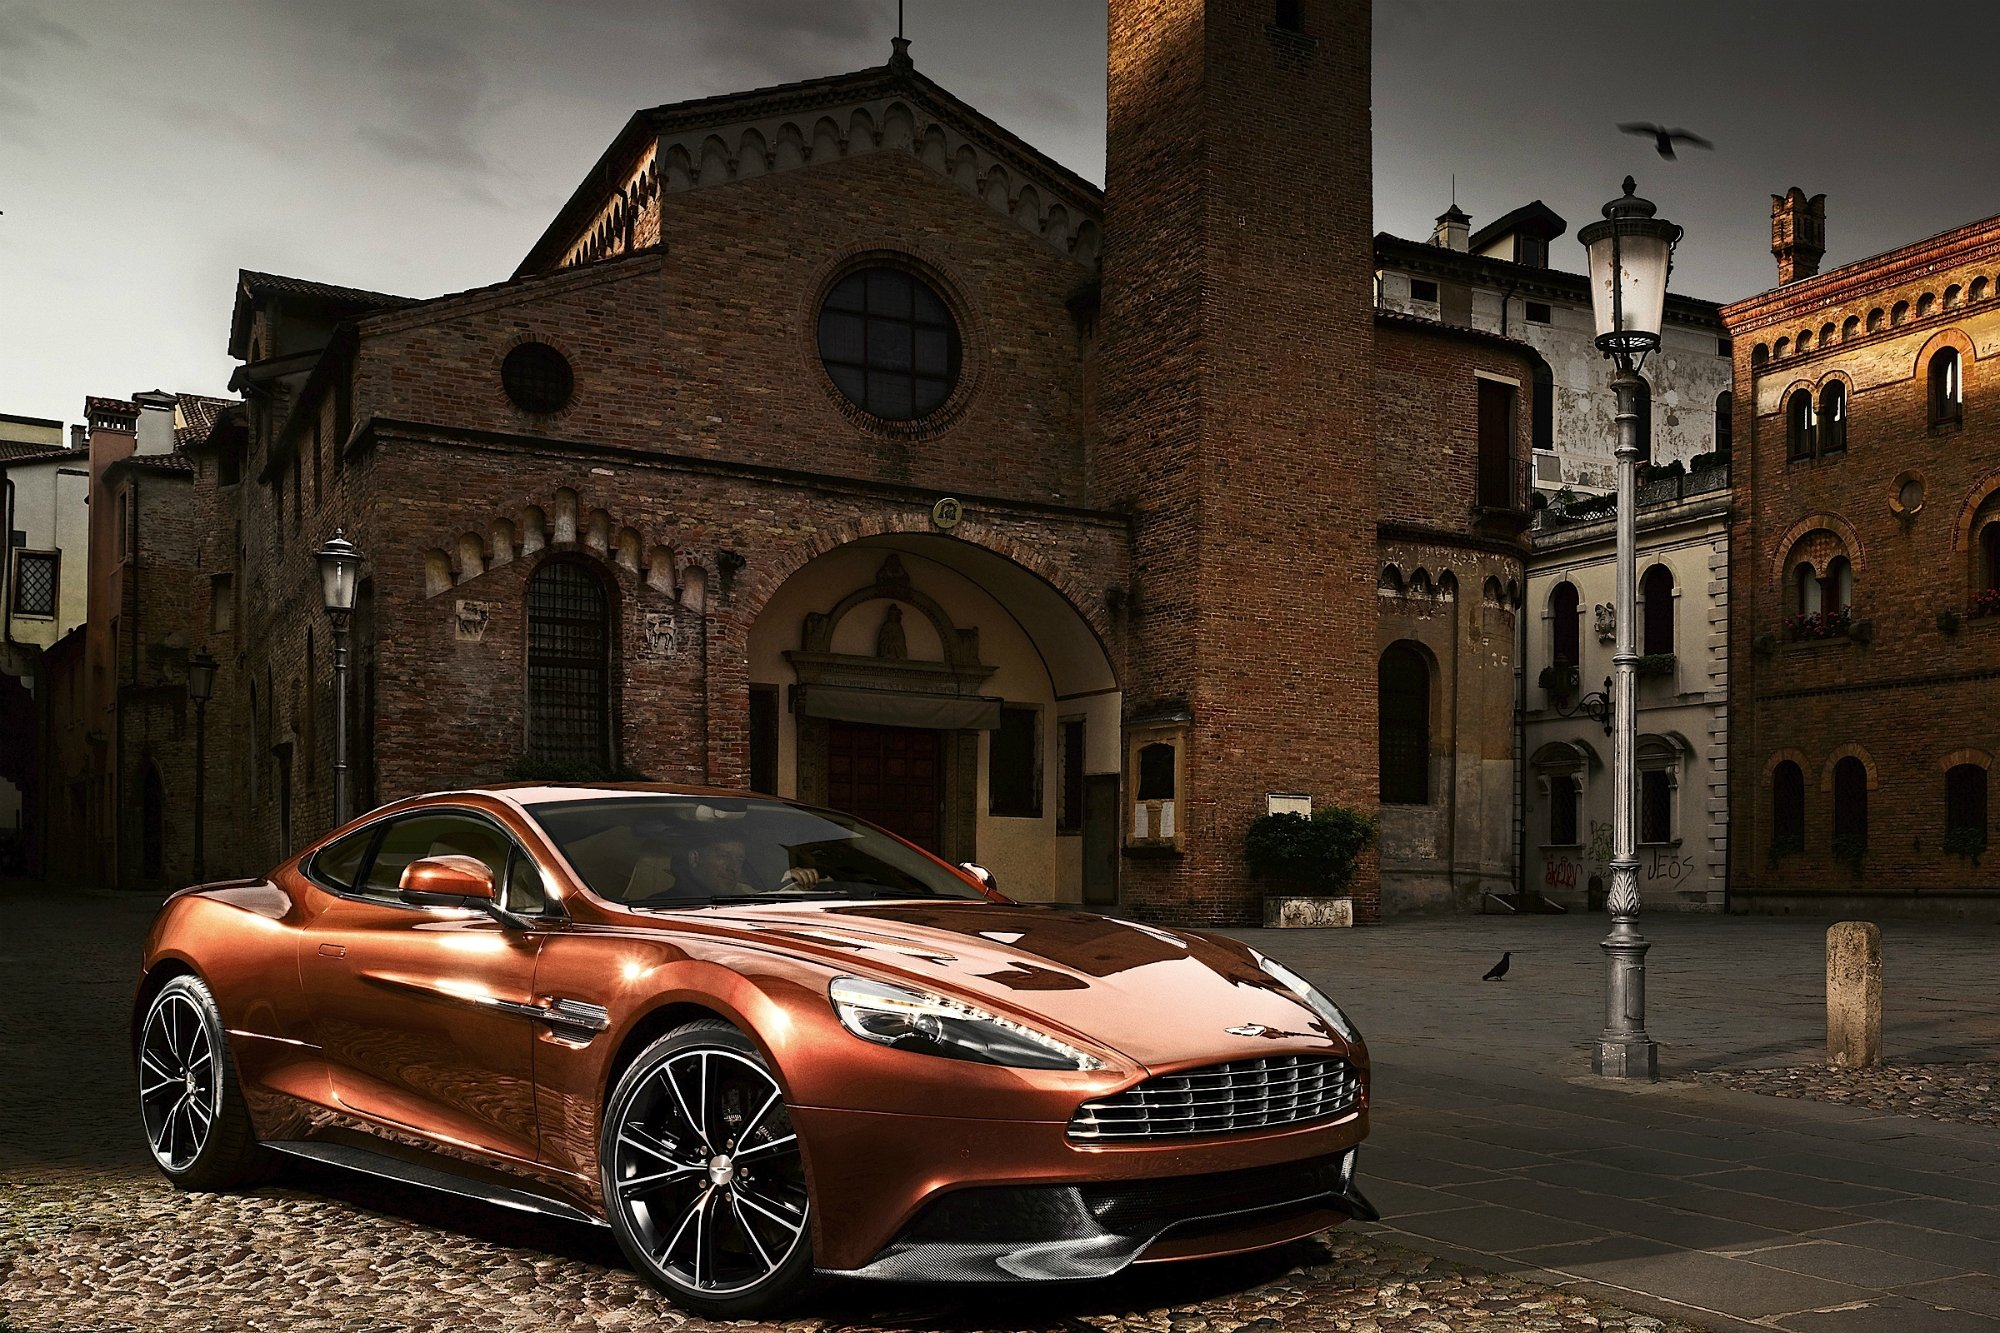 Aston Martin Vanquish 2014 HD Wallpaper 262 2000x1333